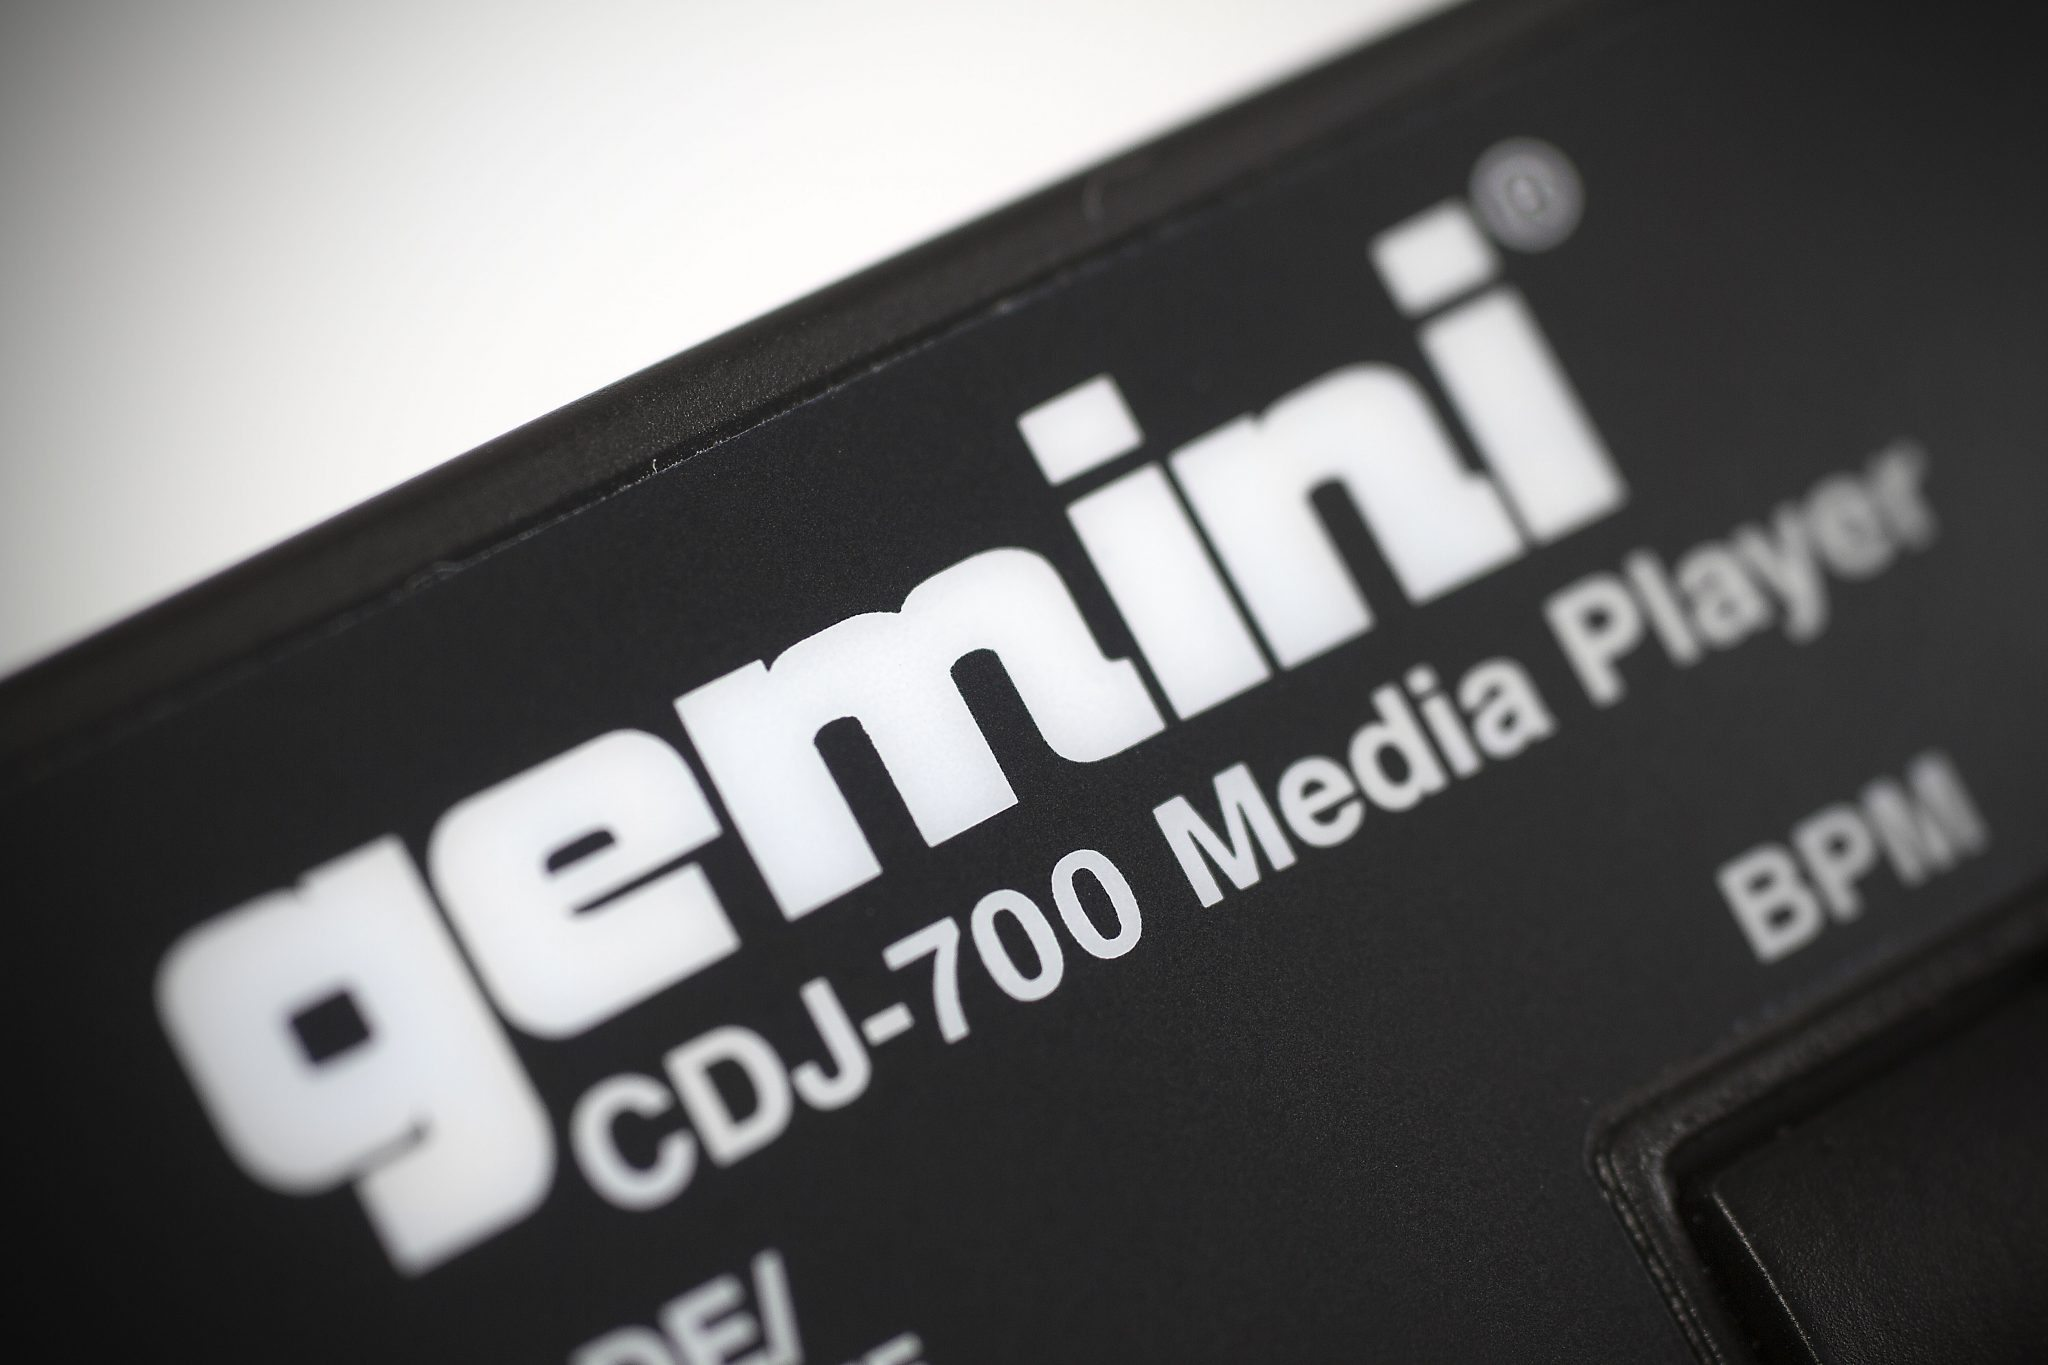 REVIEW: Gemini CDJ-700 Media Player 8